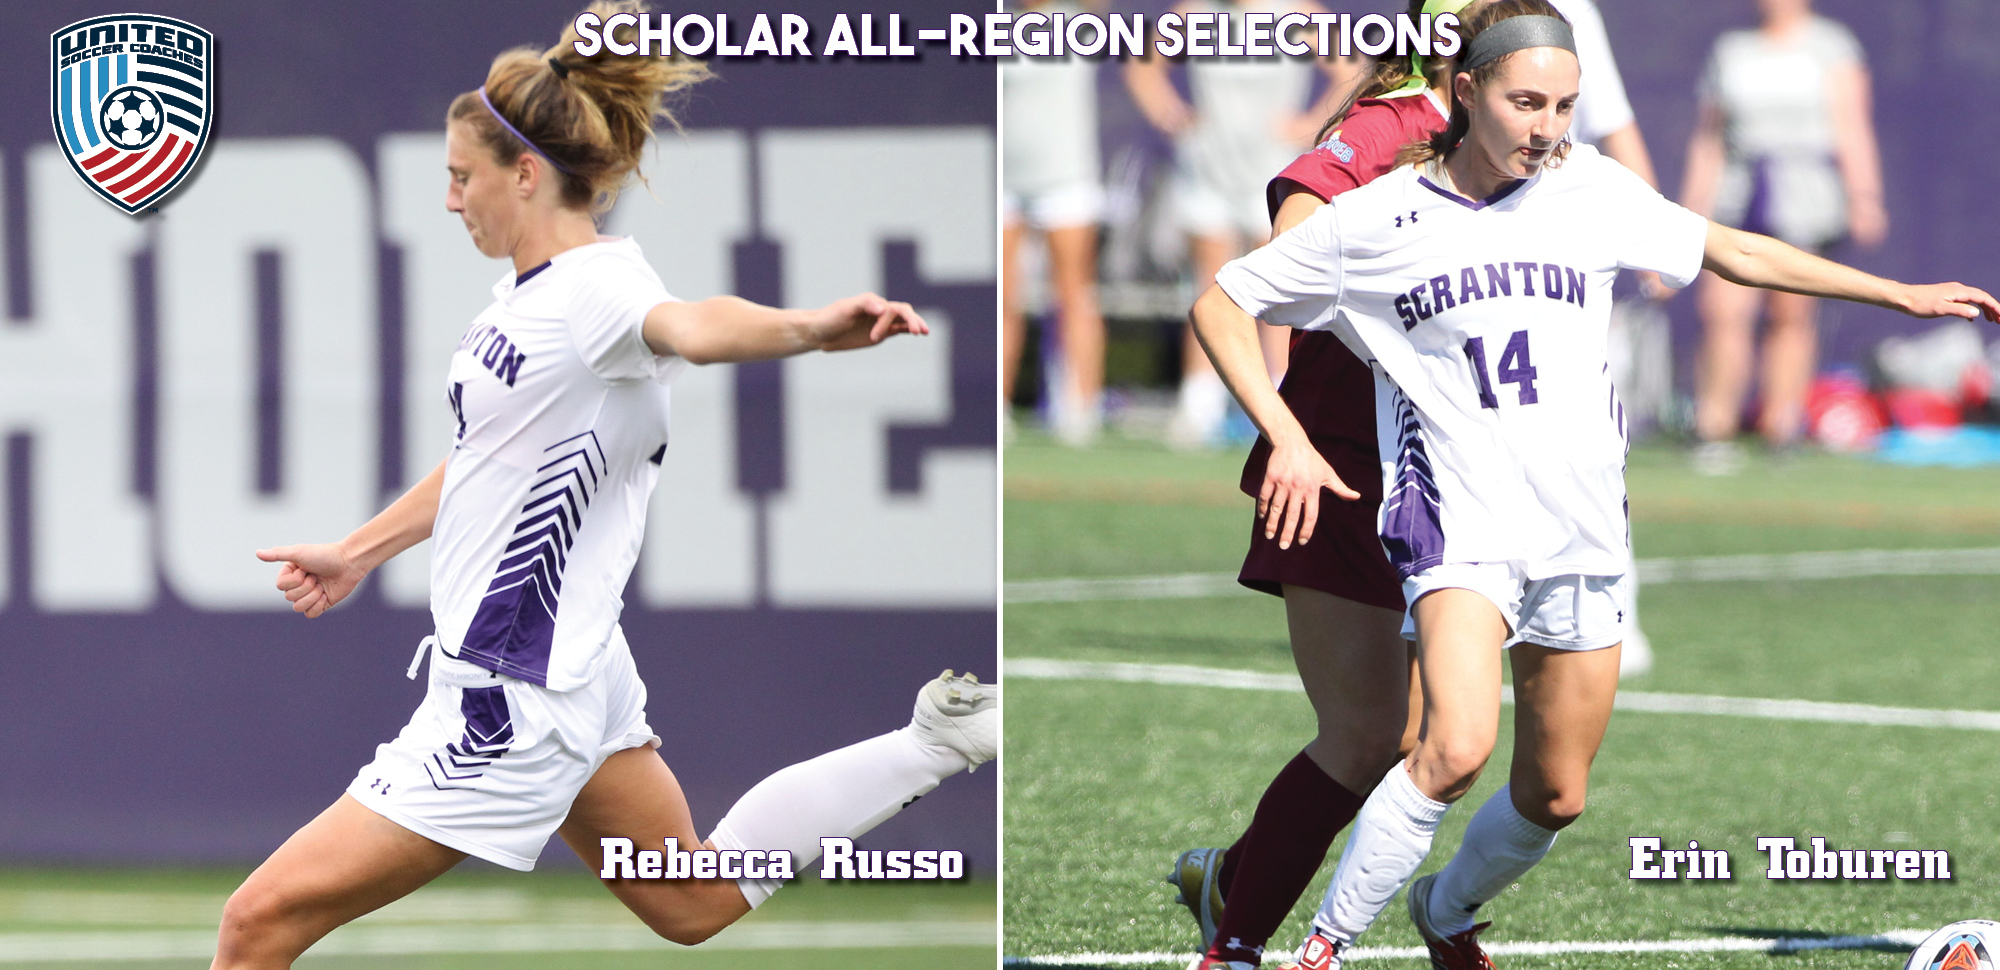 Russo, Toburen Nab United Soccer Coaches Scholar All-East Region Selections